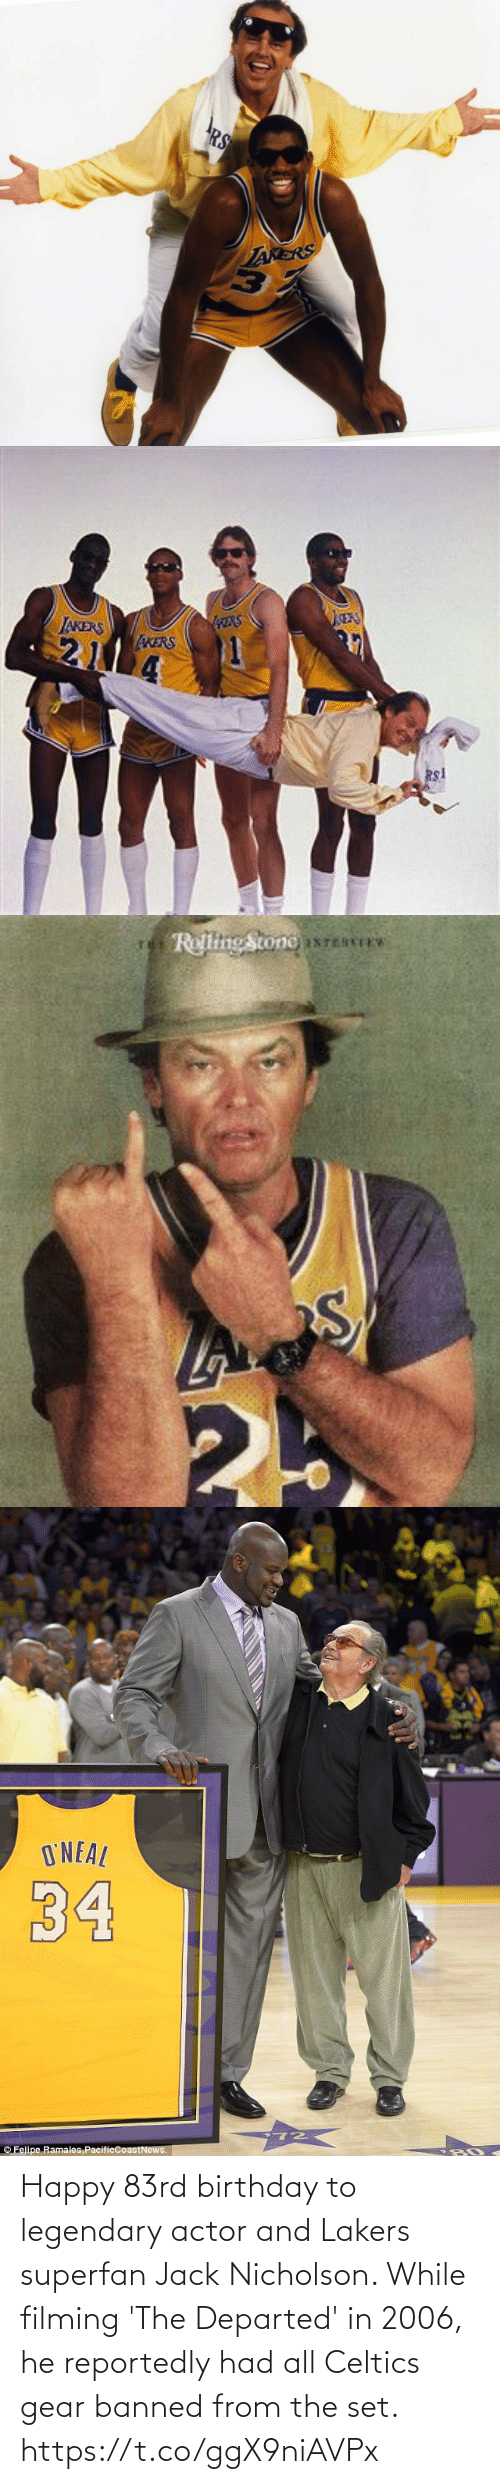 Birthday: Happy 83rd birthday to legendary actor and Lakers superfan Jack Nicholson.   While filming 'The Departed' in 2006, he reportedly had all Celtics gear banned from the set. https://t.co/ggX9niAVPx